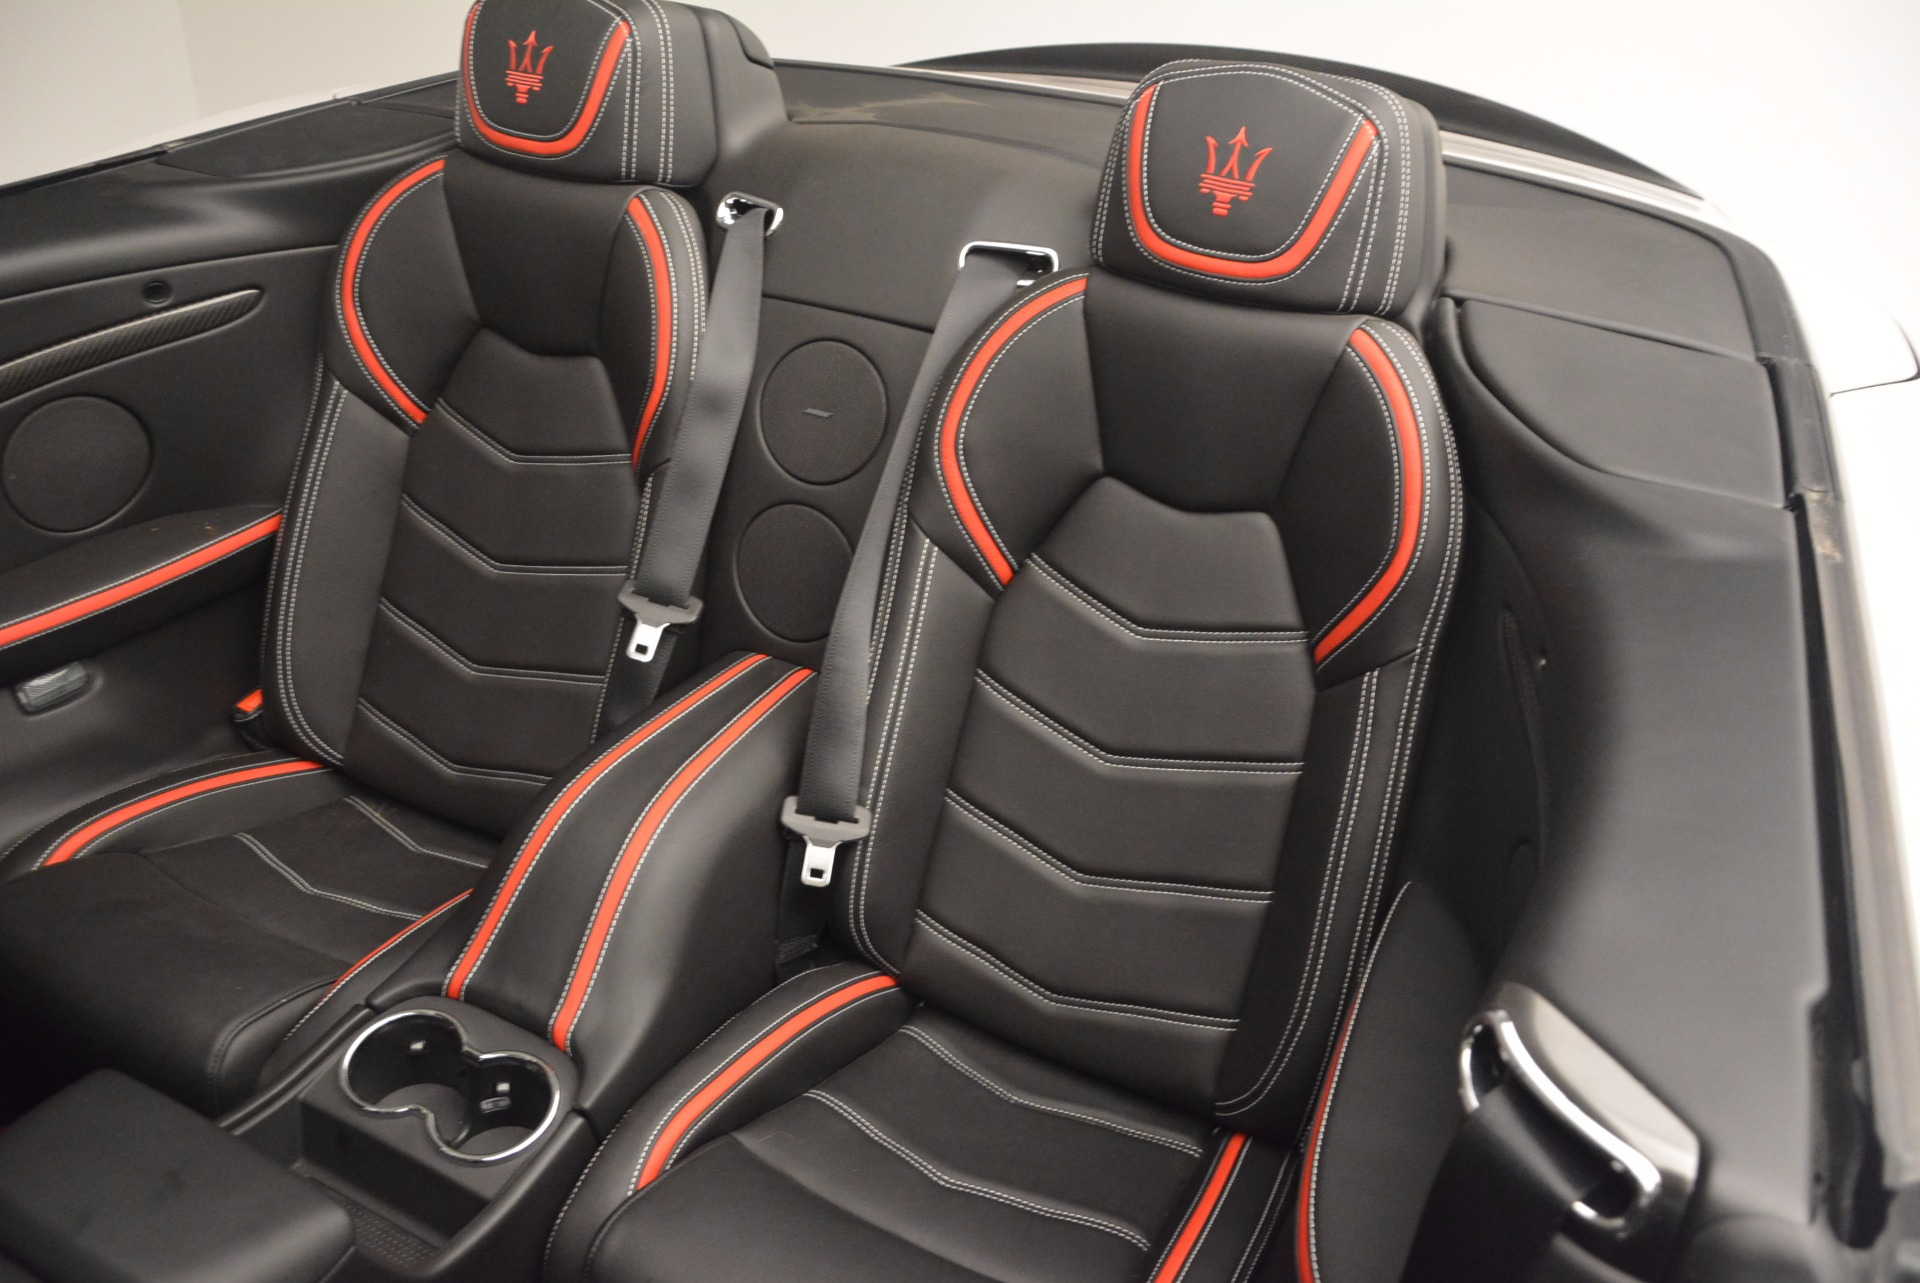 Used 2015 Maserati GranTurismo MC Centennial For Sale In Westport, CT 1107_p31